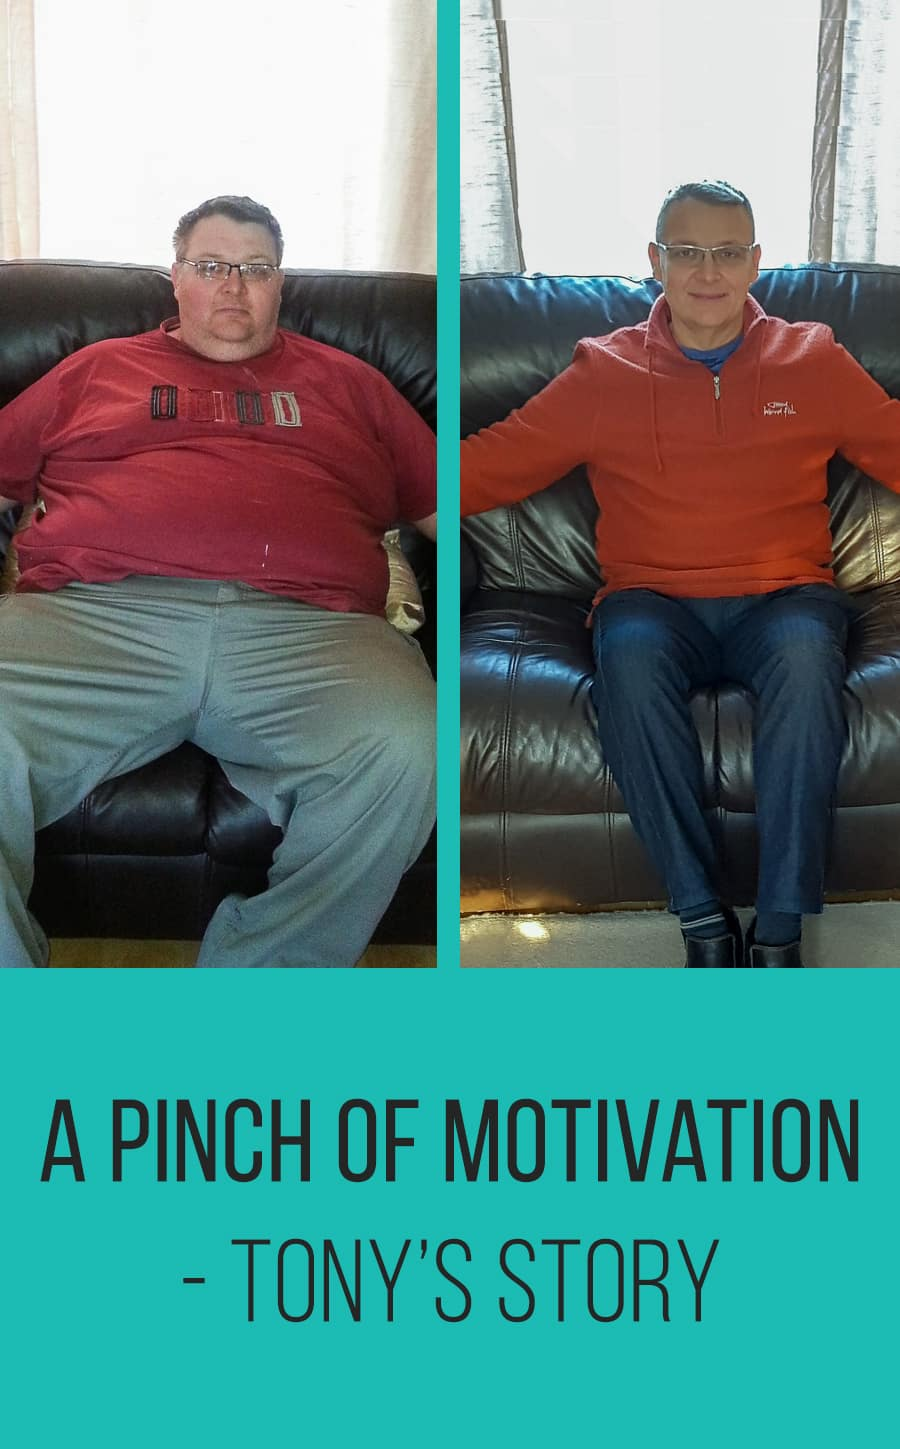 A Pinch of Motivation - Tony's Story-First Image